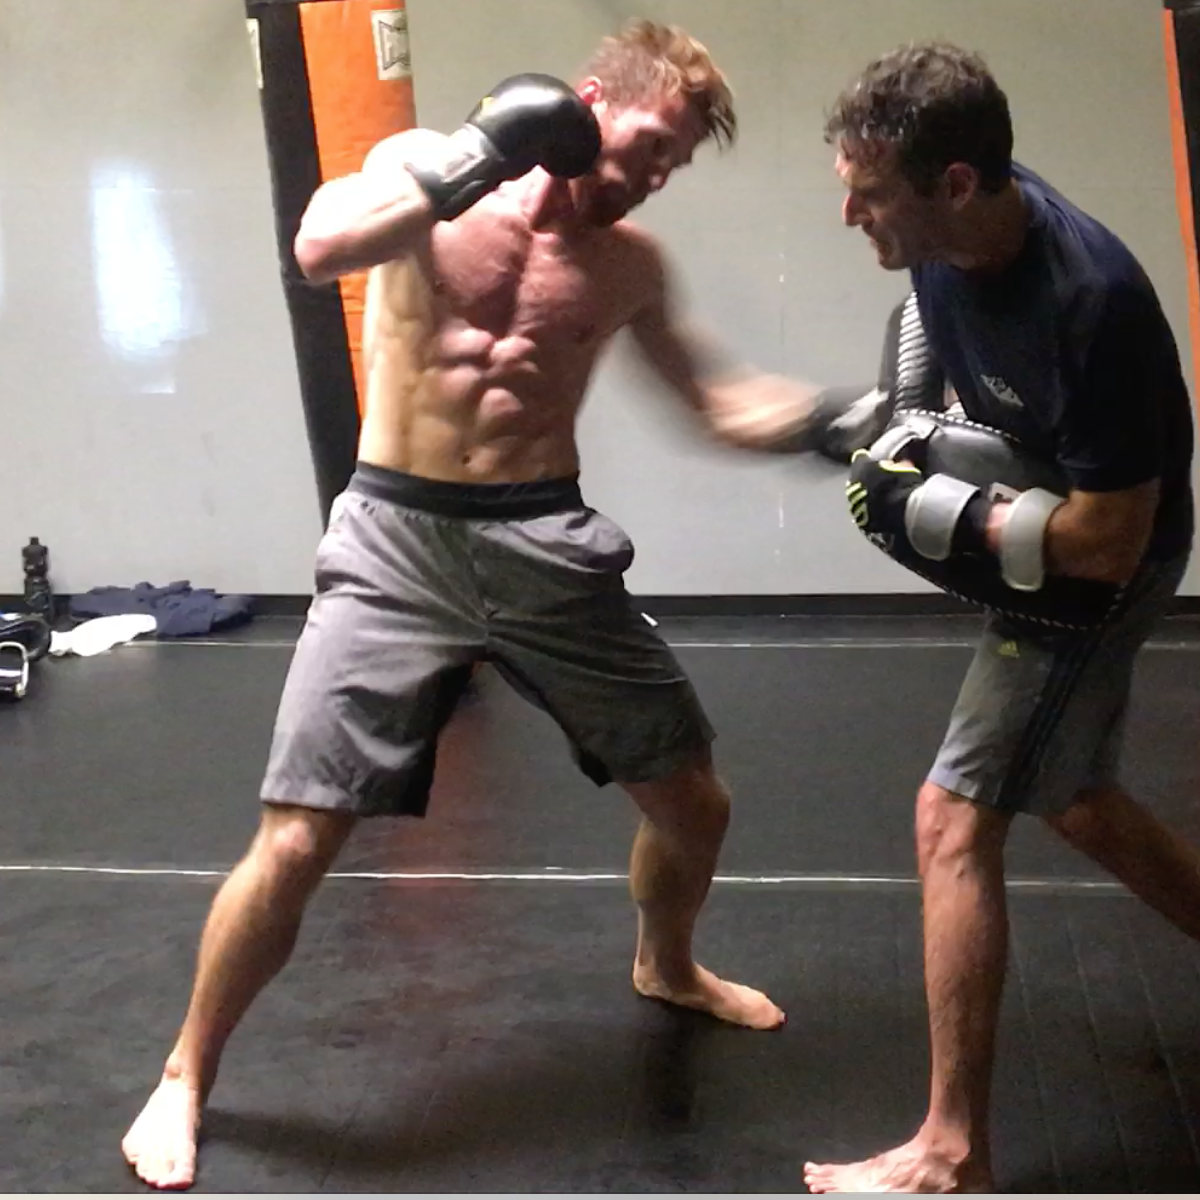 Fight Reel - Kickboxing, fight choreography and Taekwondo experieince